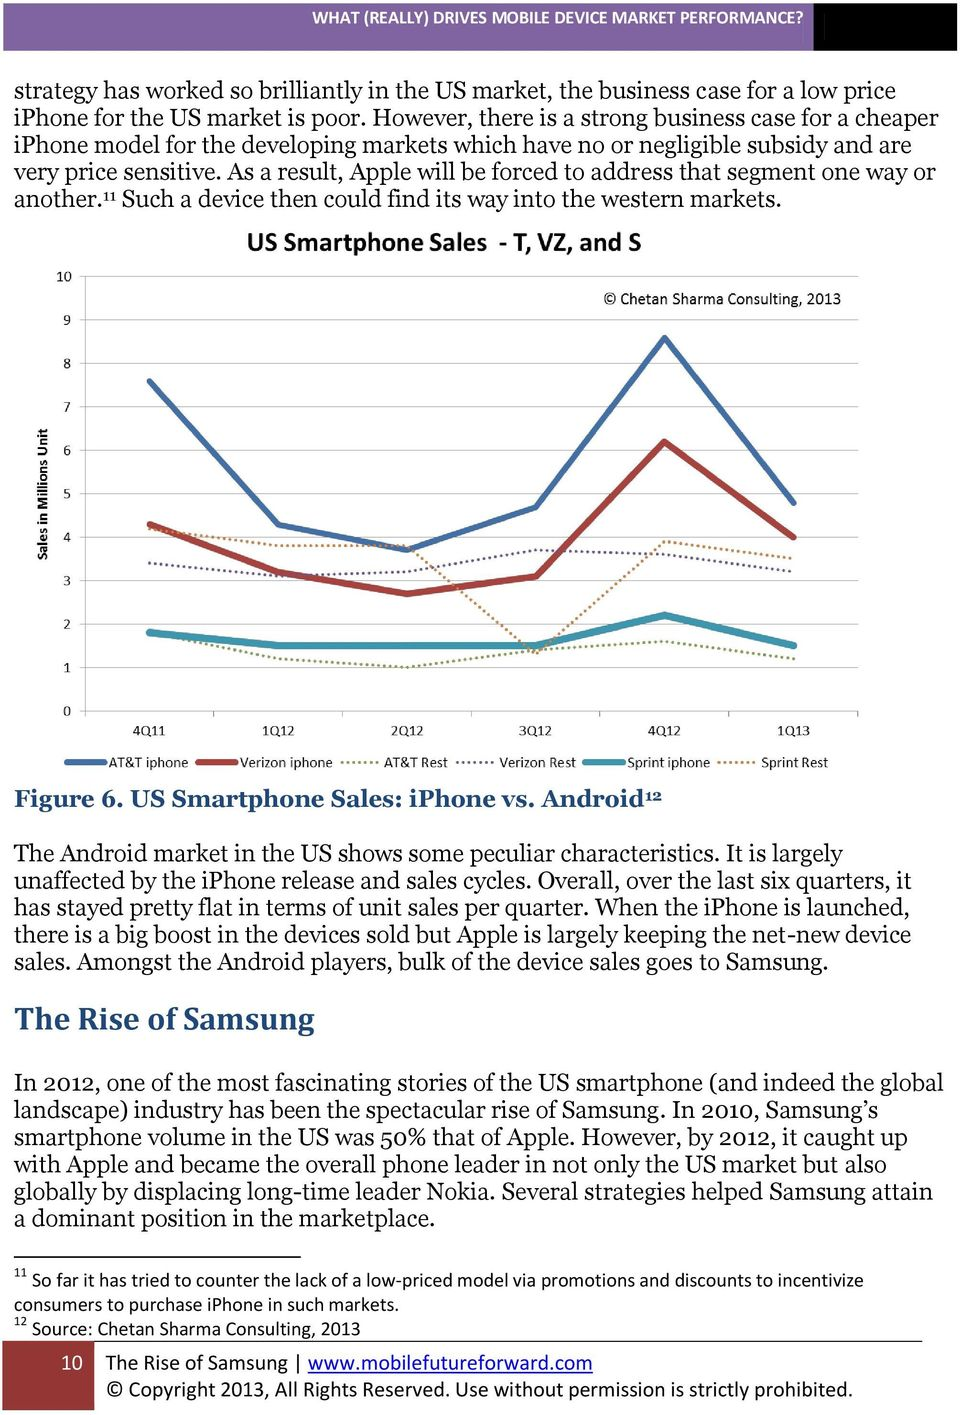 As a result, Apple will be forced to address that segment one way or another. 11 Such a device then could find its way into the western markets. Figure 6. US Smartphone Sales: iphone vs.